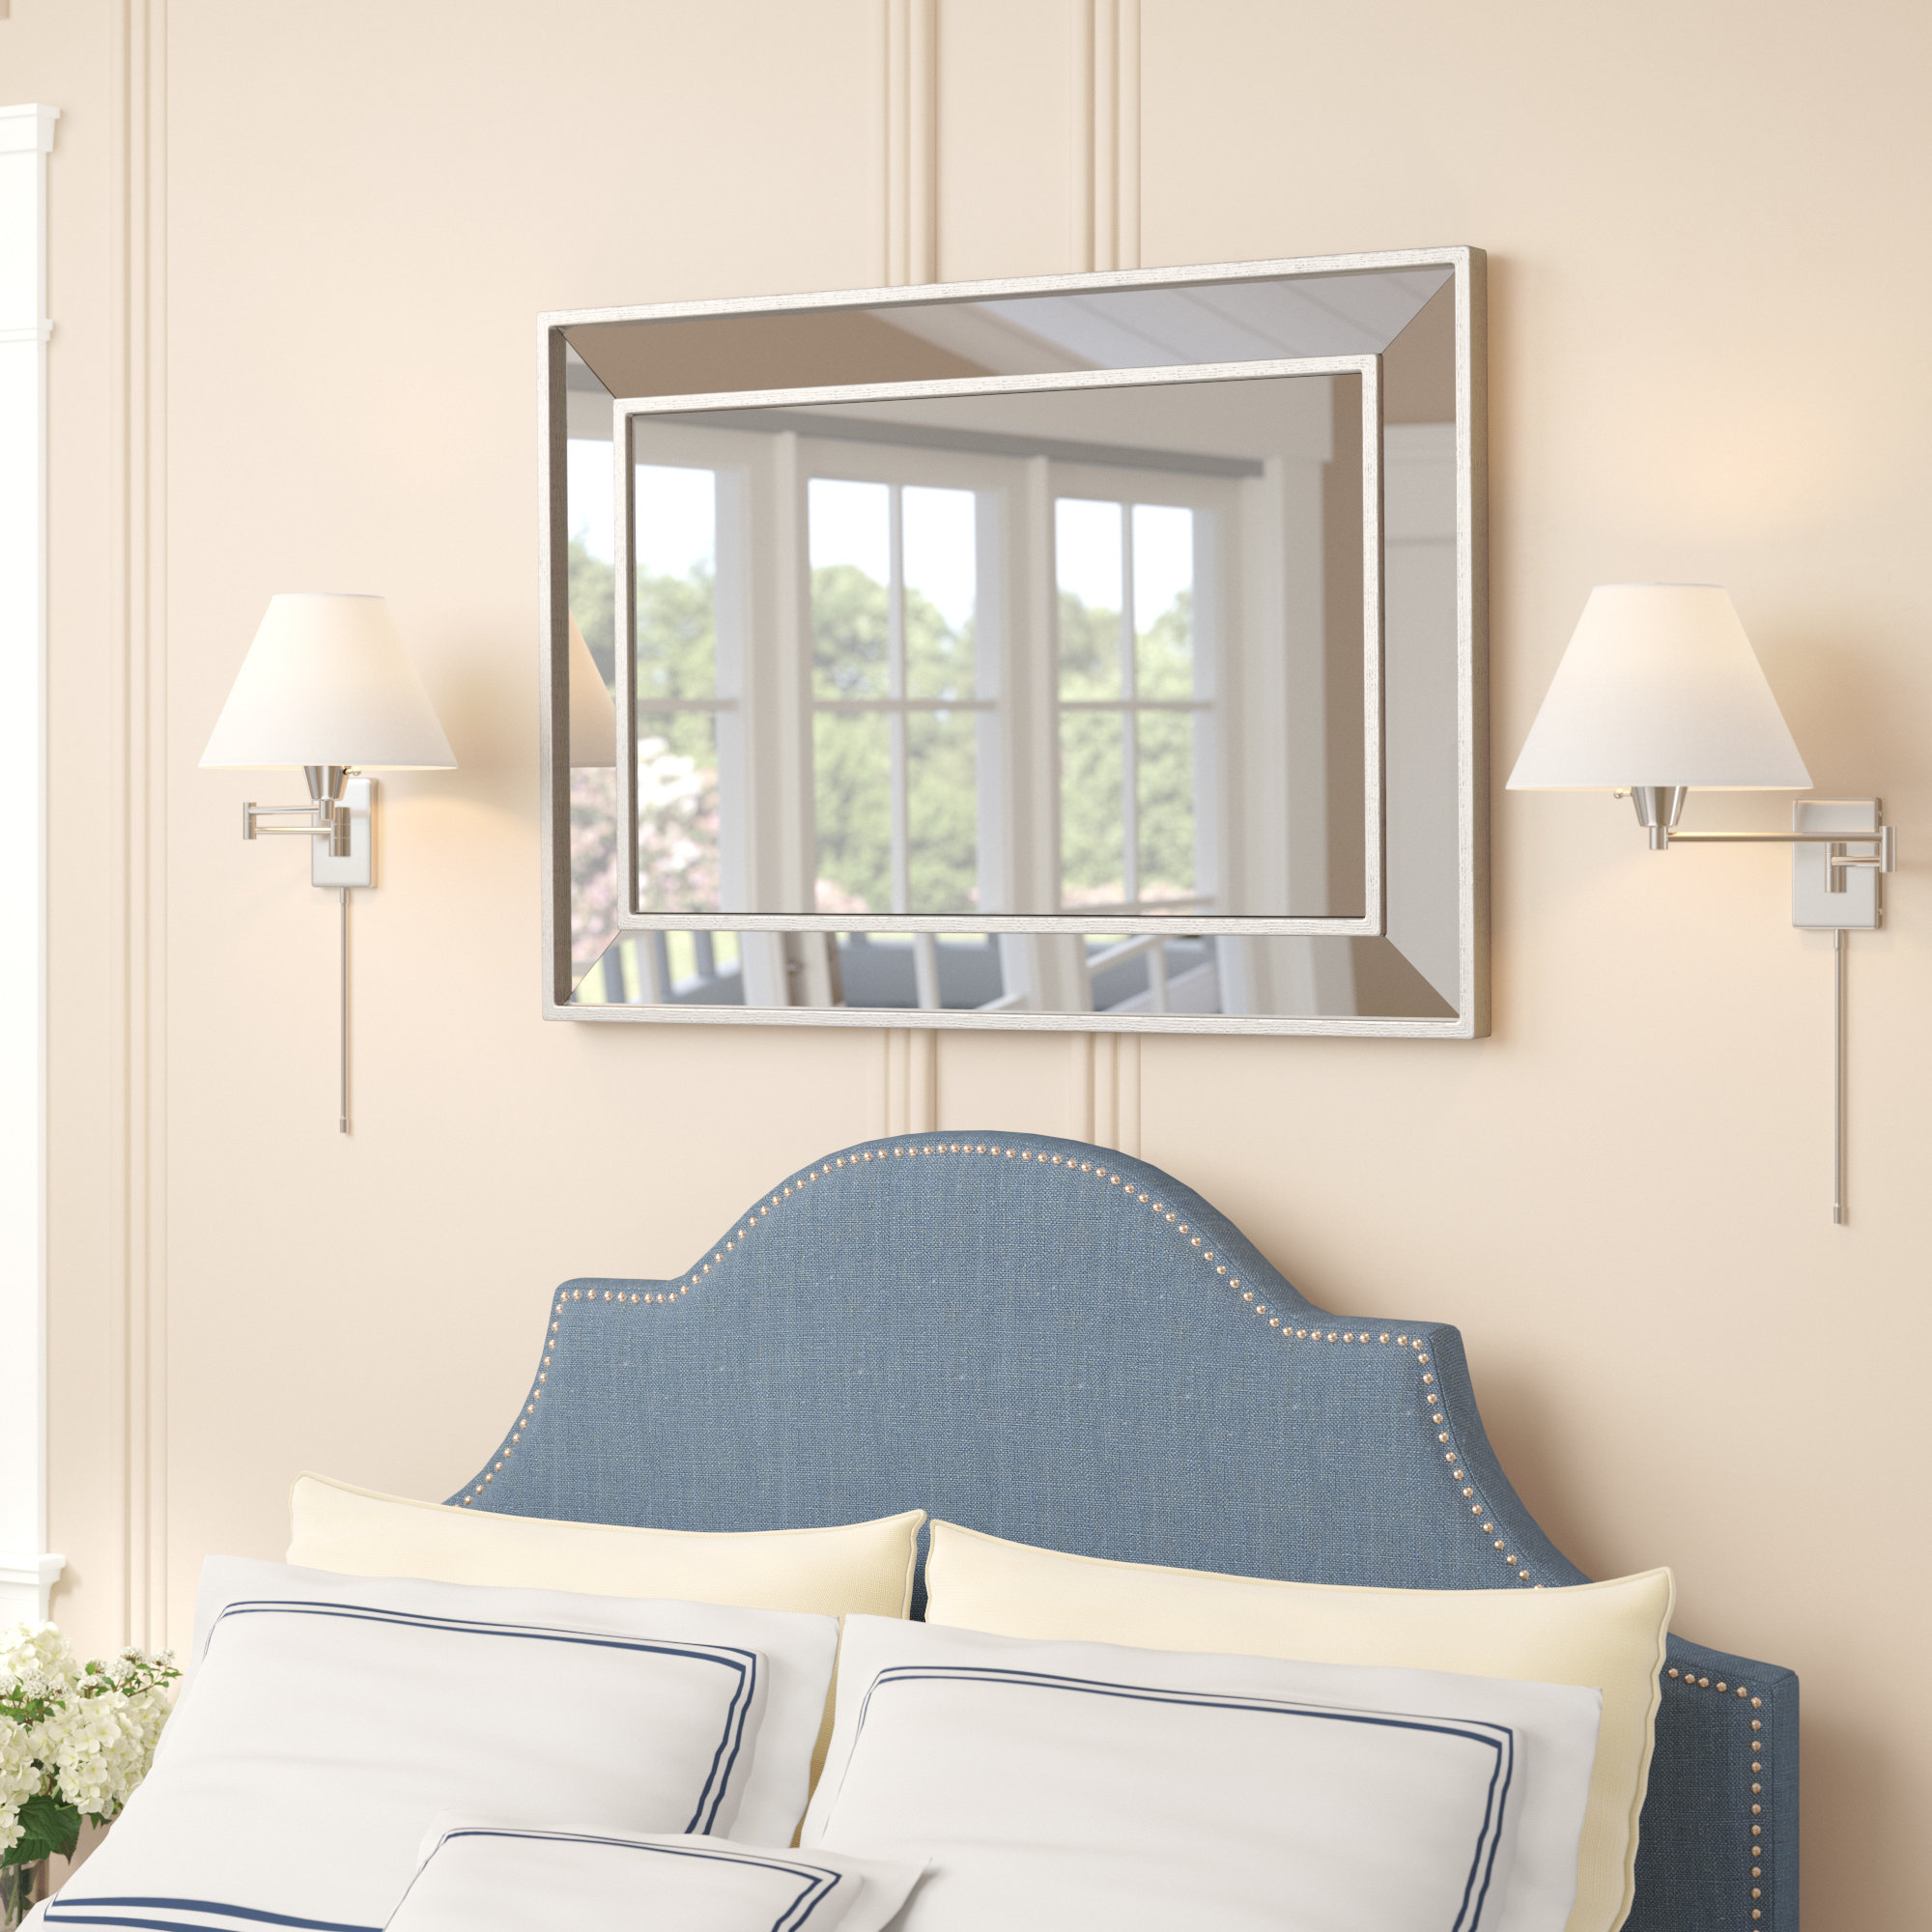 Tutuala Traditional Beveled Wall Mirror Inside Most Recently Released Reba Accent Wall Mirrors (View 11 of 20)